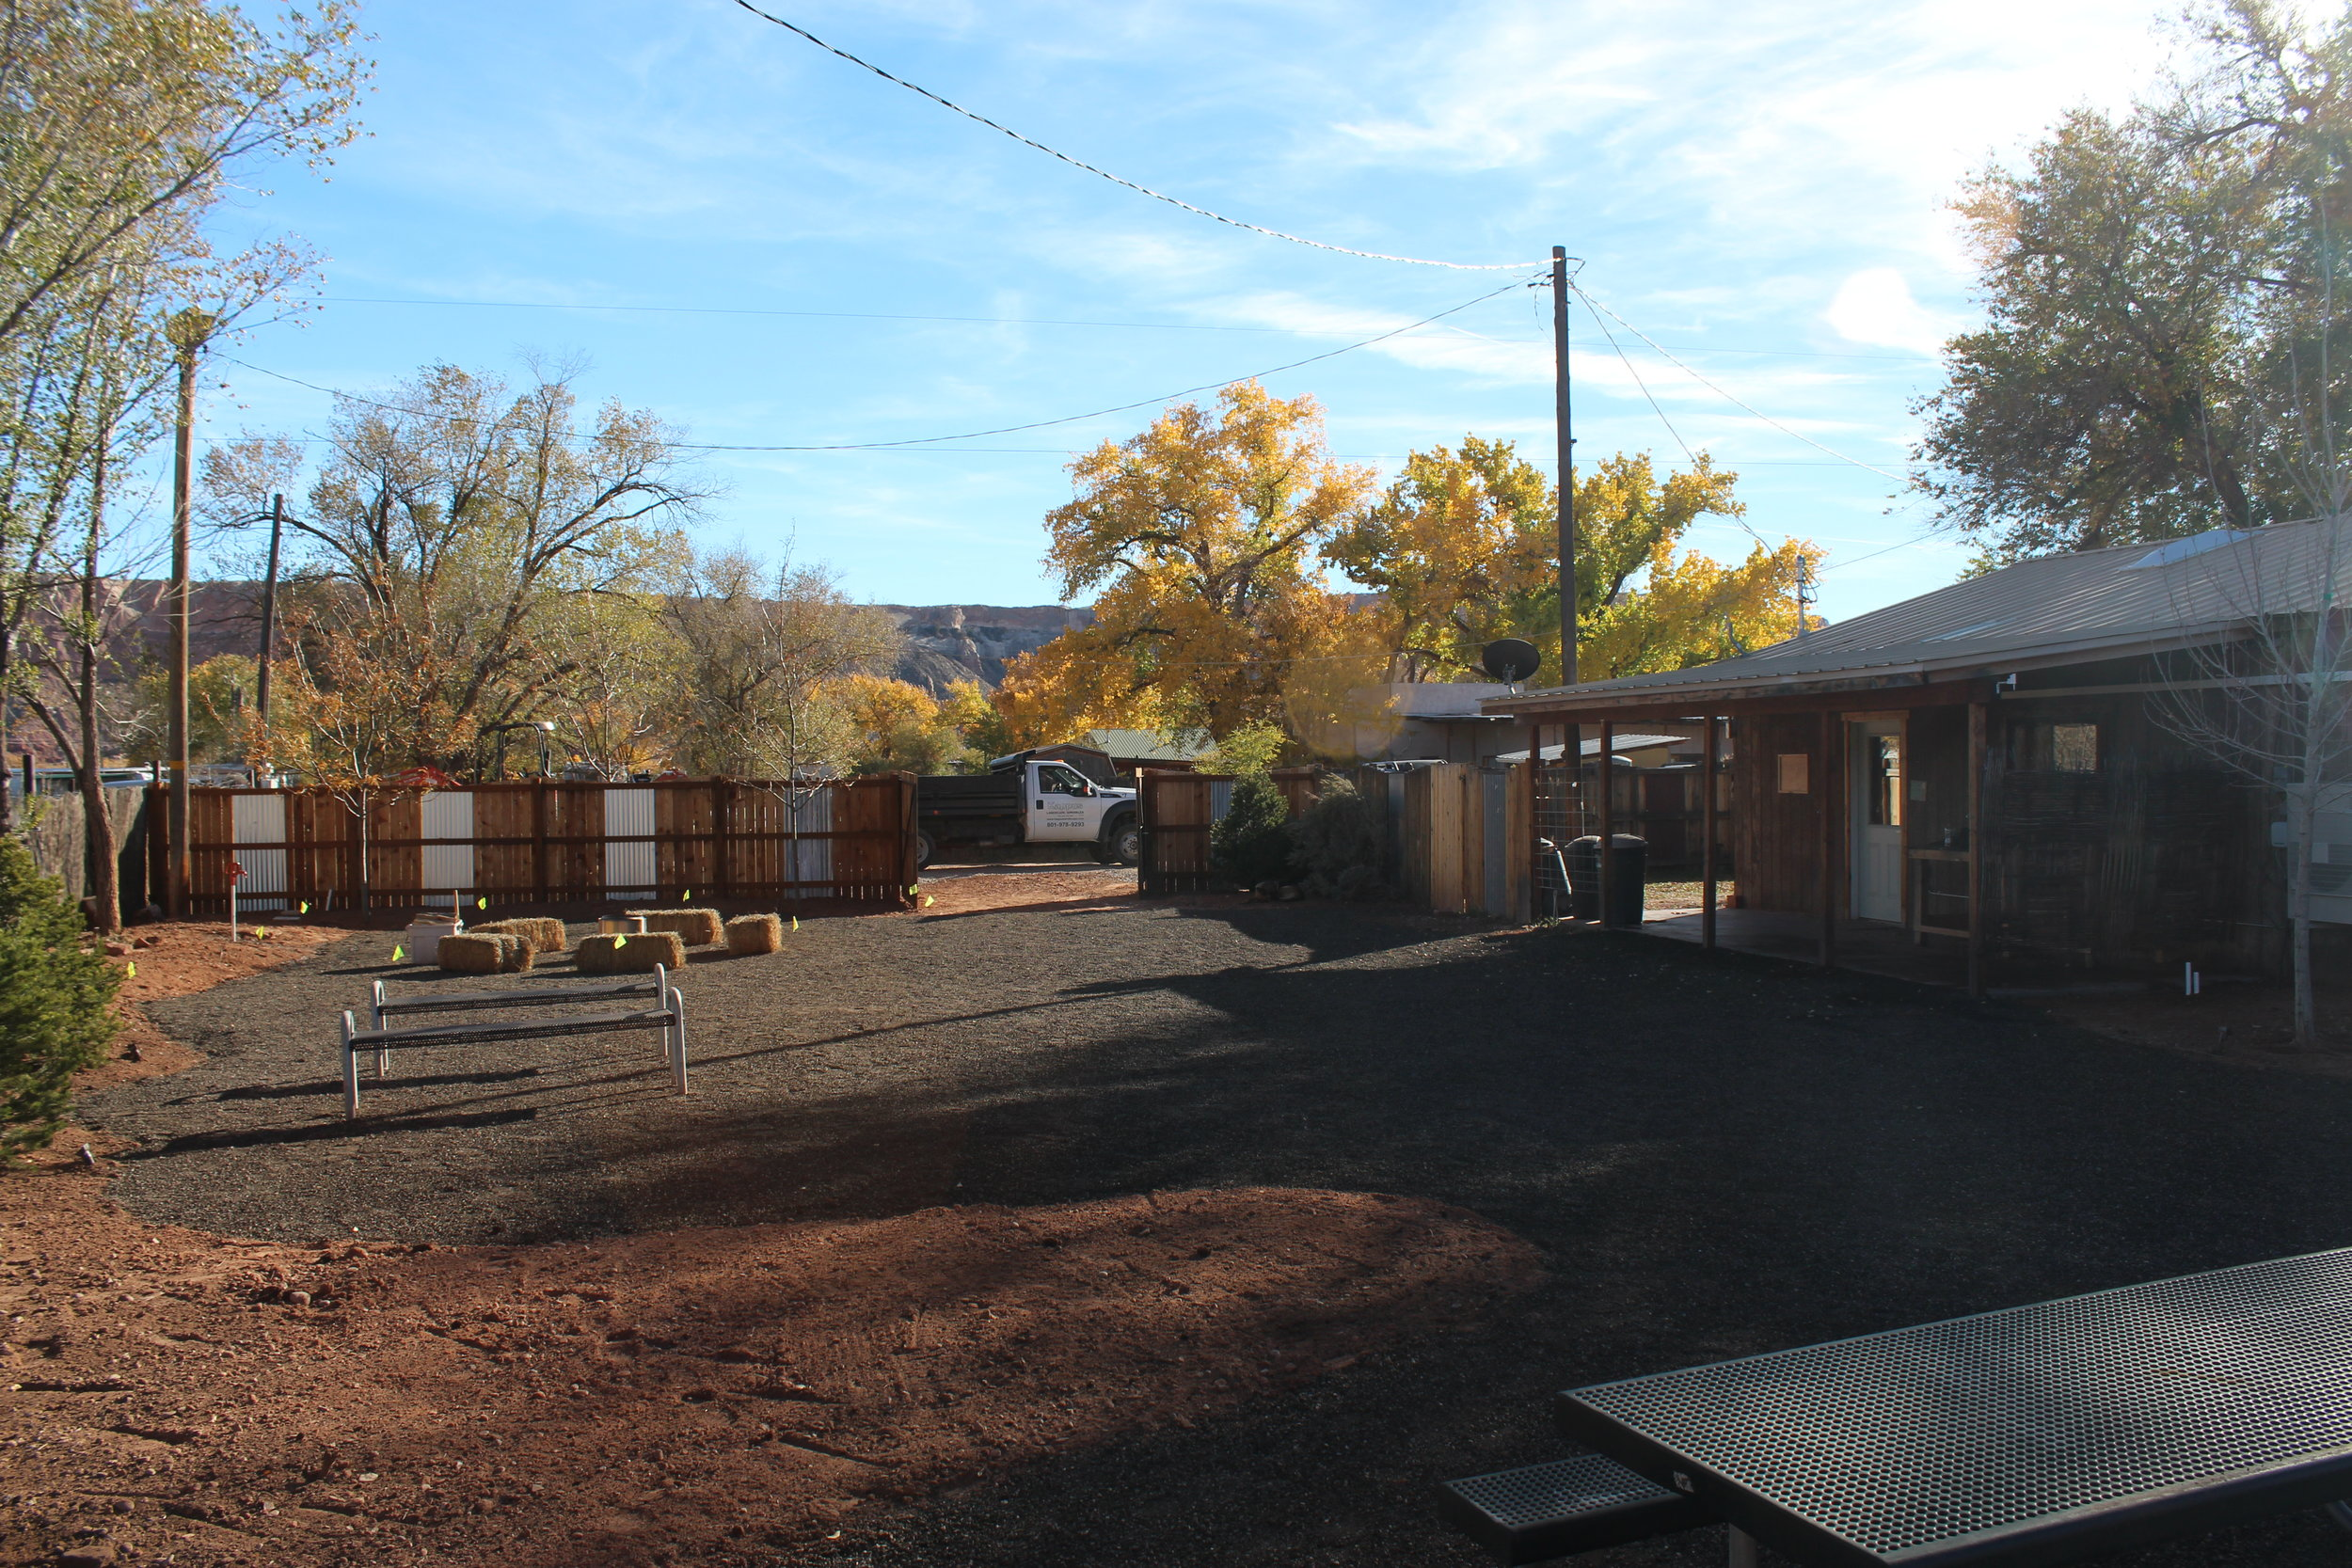 Nearly completed donation project by Kappus Landscape Sprinkler at the Bear's Ears Visitor Center in Bluff, Utah.